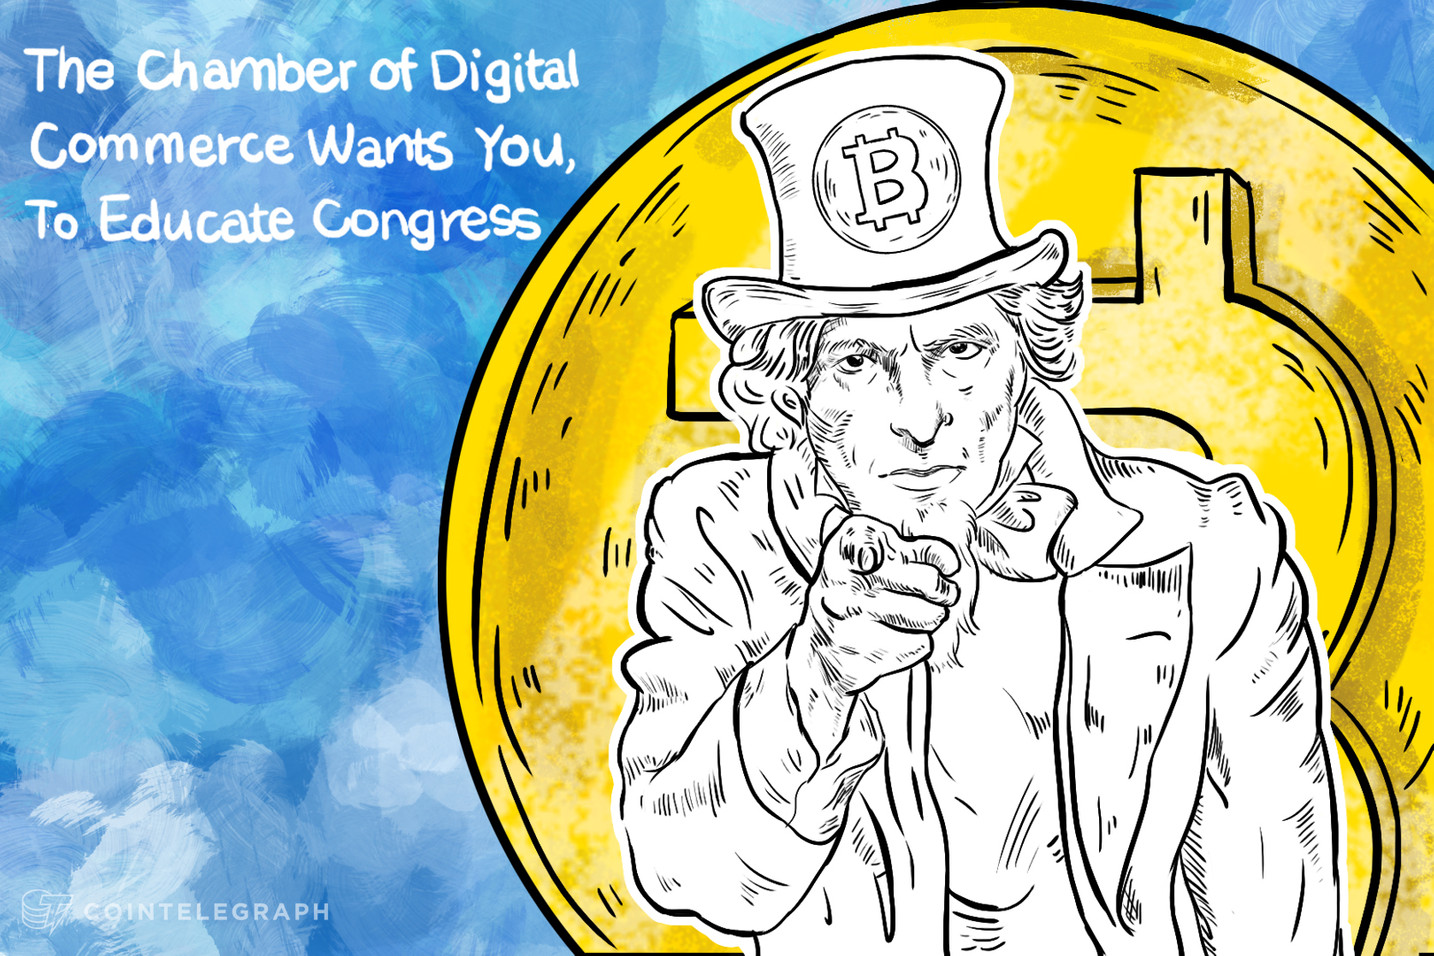 The Chamber of Digital Commerce Wants You, To Educate Congress